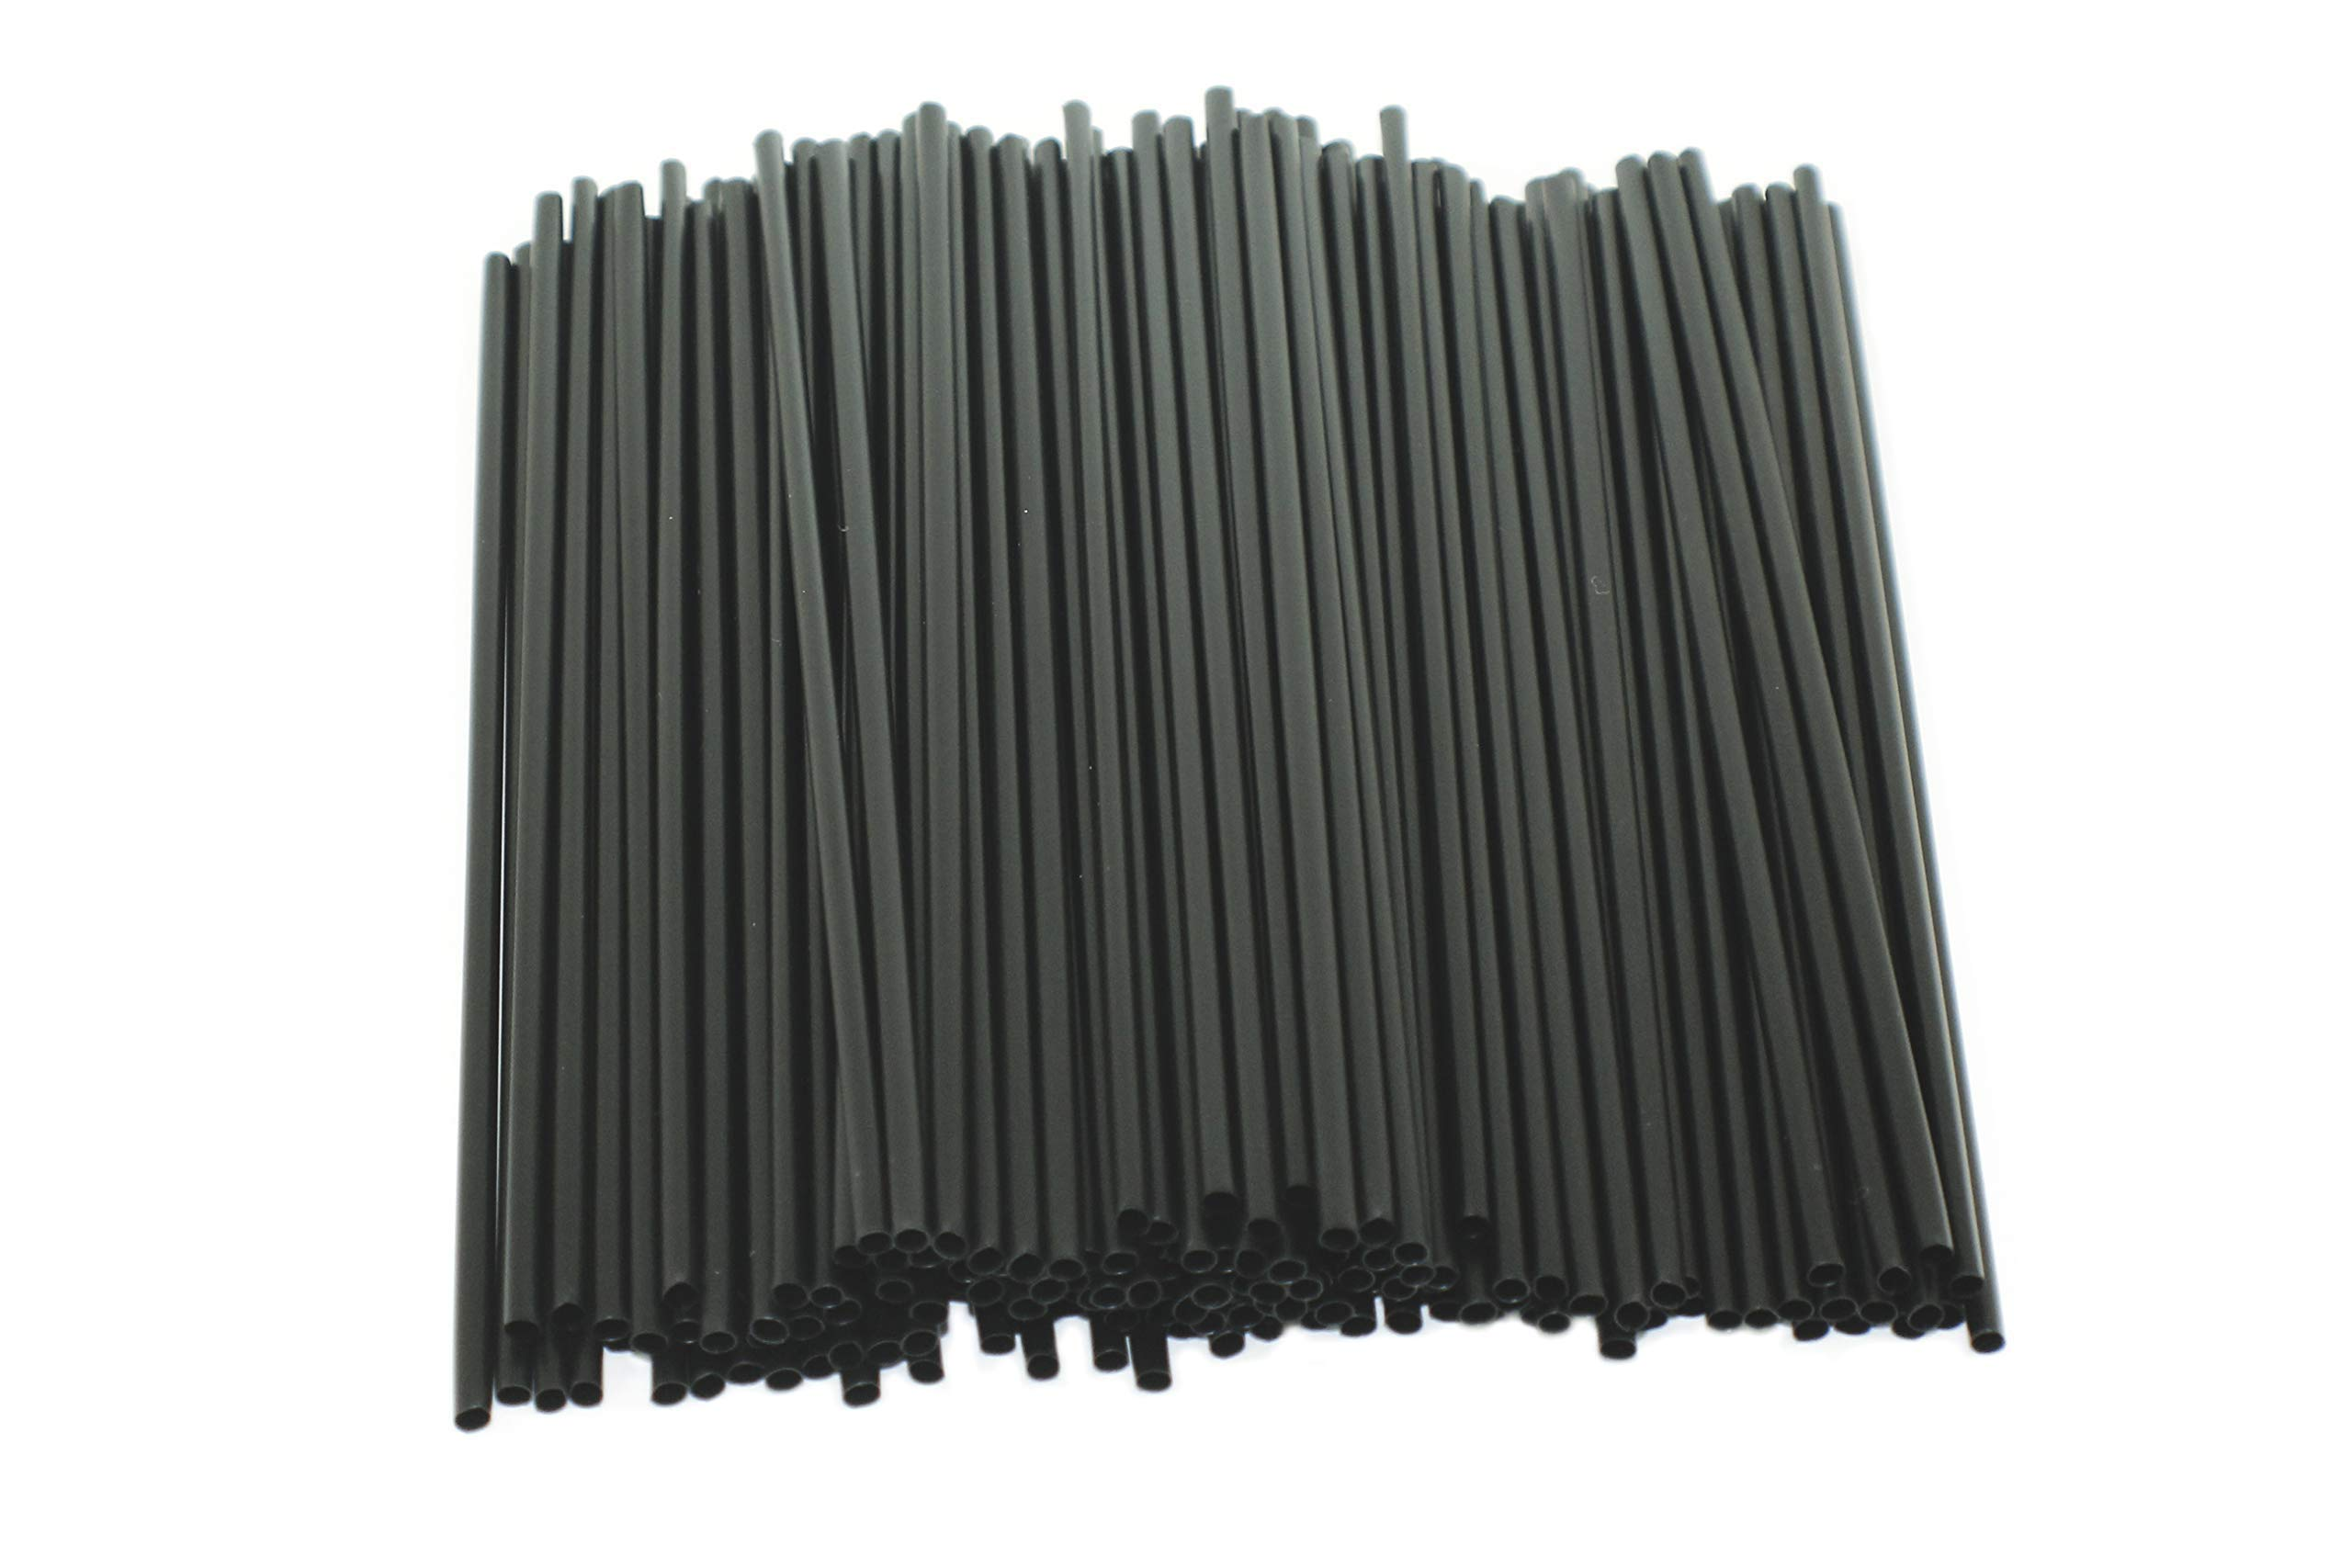 [12000 COUNT] 5'' Black Disposable Cocktail Straws Compostable PLA Stirrer Drink Restaurant Bar Specialty Drinks Stir Cafe Cappuccino Frappe 5 inches Long, Made of Corn, PLA, Sustainable by Harvest Pack GOURMET SHOWCASE